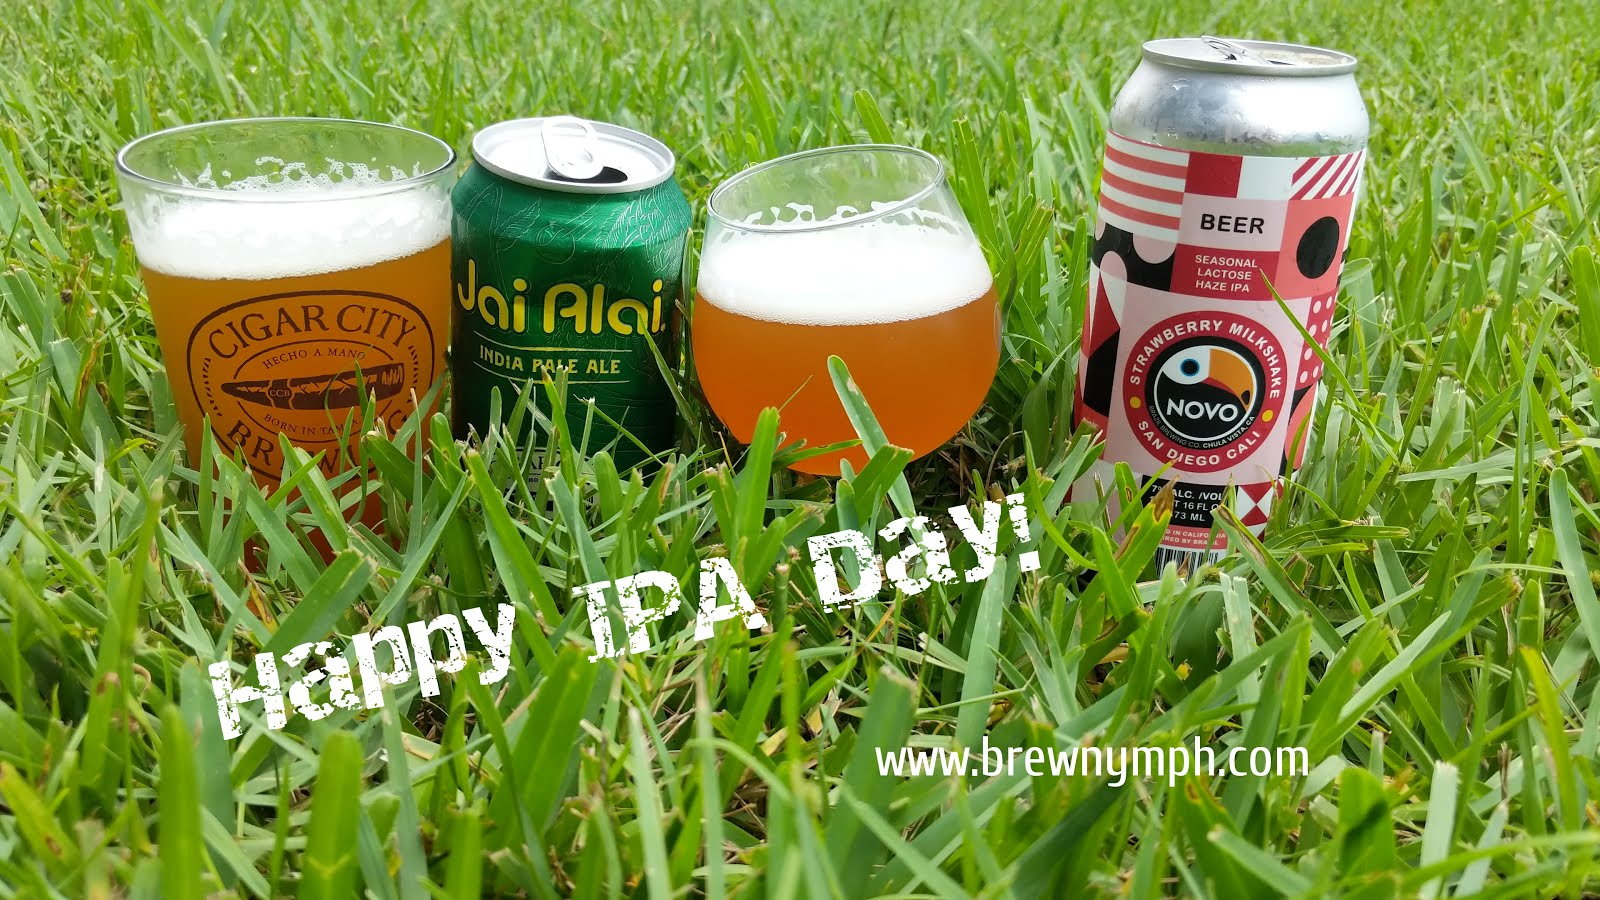 HAPPY IPA DAY! 8/6